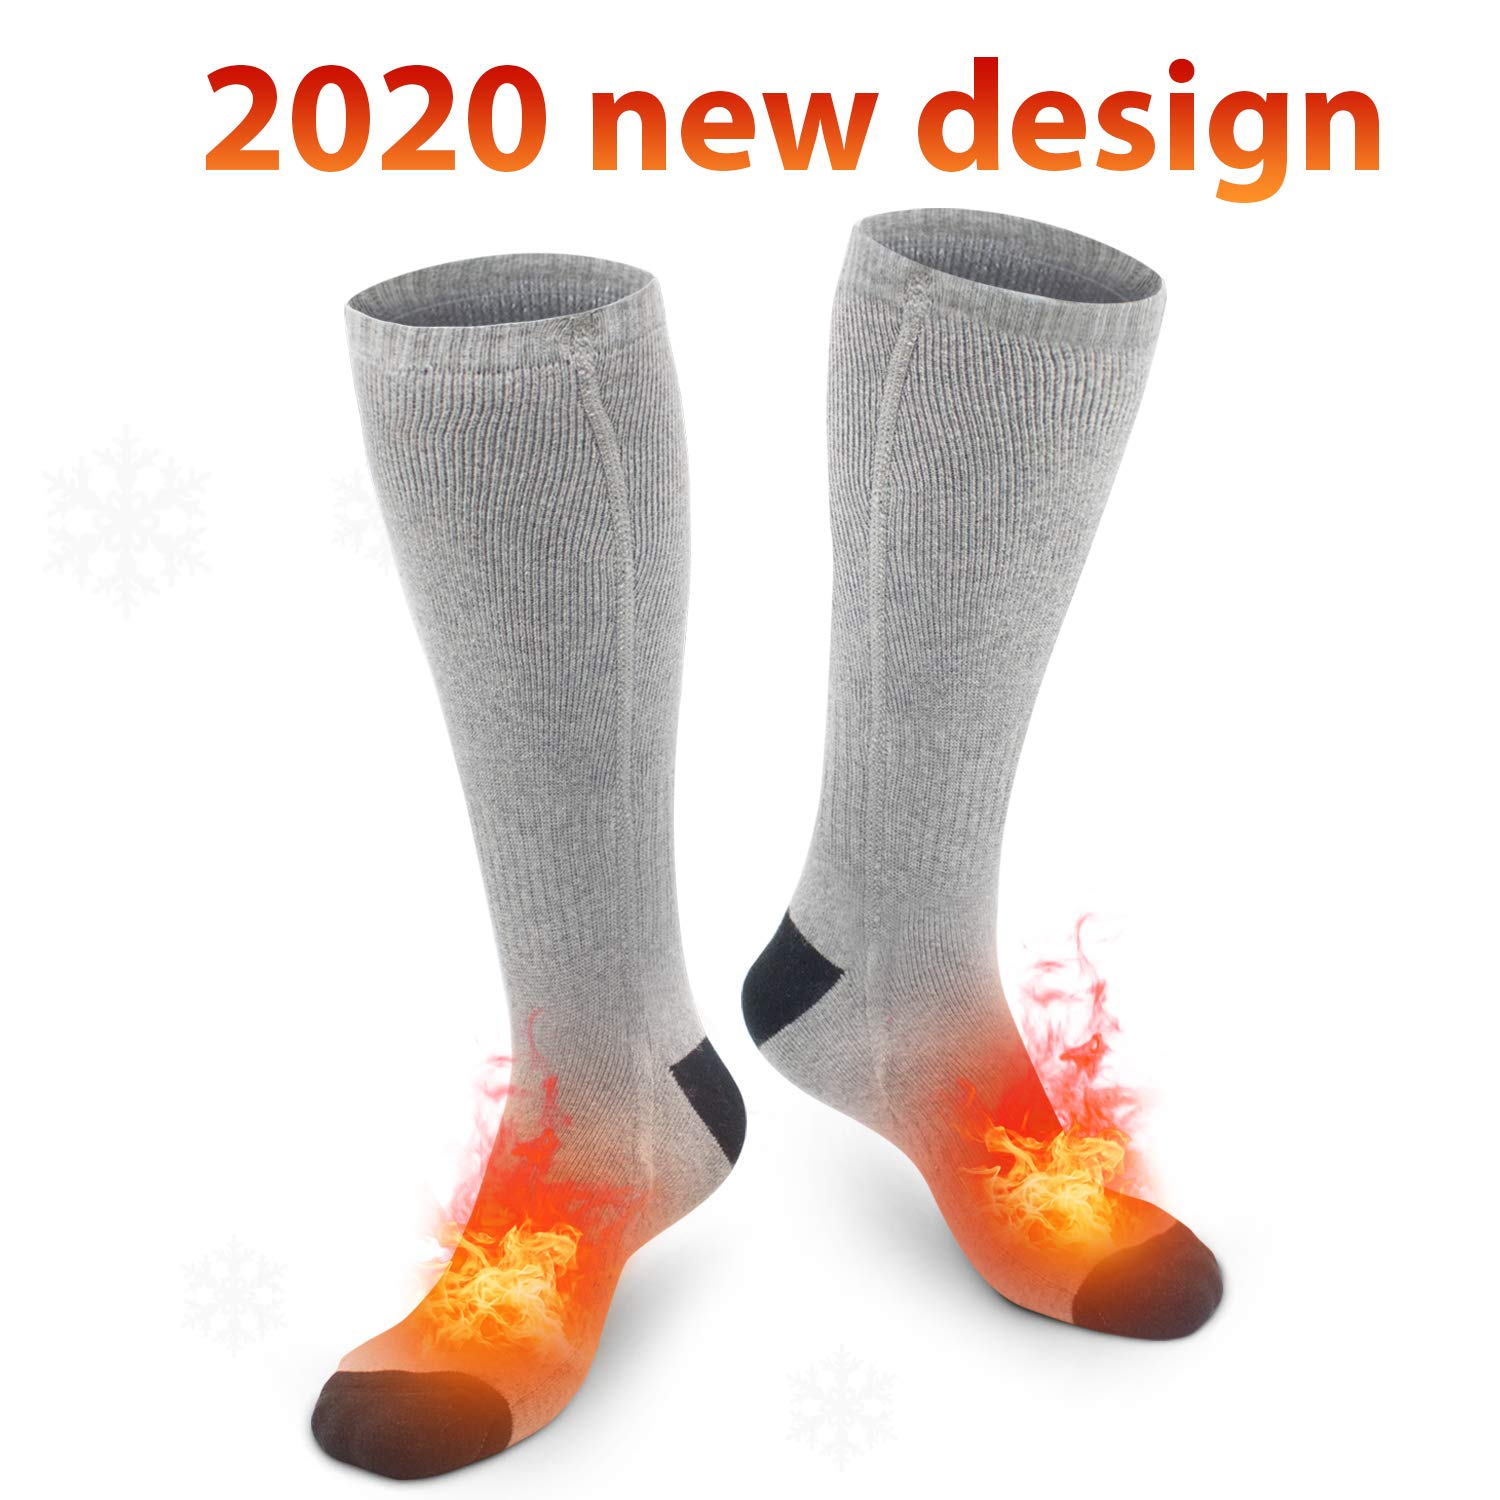 XBUTY Heated Socks for Women Men, Rechargeable Electric Socks Battery Heated Socks, Cold Weather Thermal Socks Sport Outdoor Camping Hiking Warm Winter Socks(Gray by XBUTY